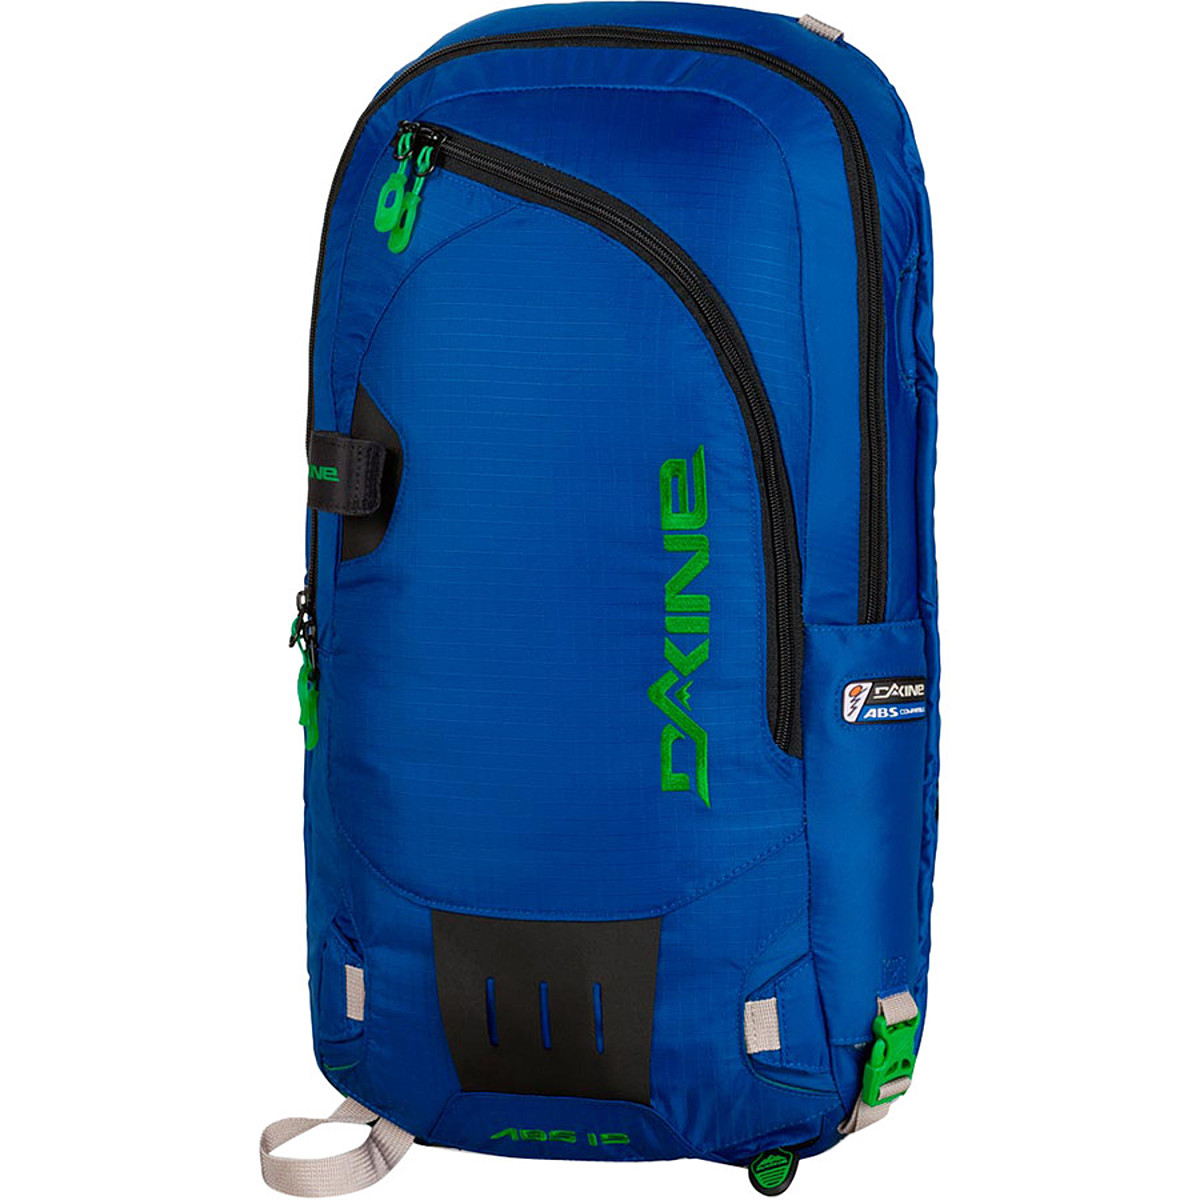 photo: DaKine ABS Vario Cover 15L avalanche airbag pack